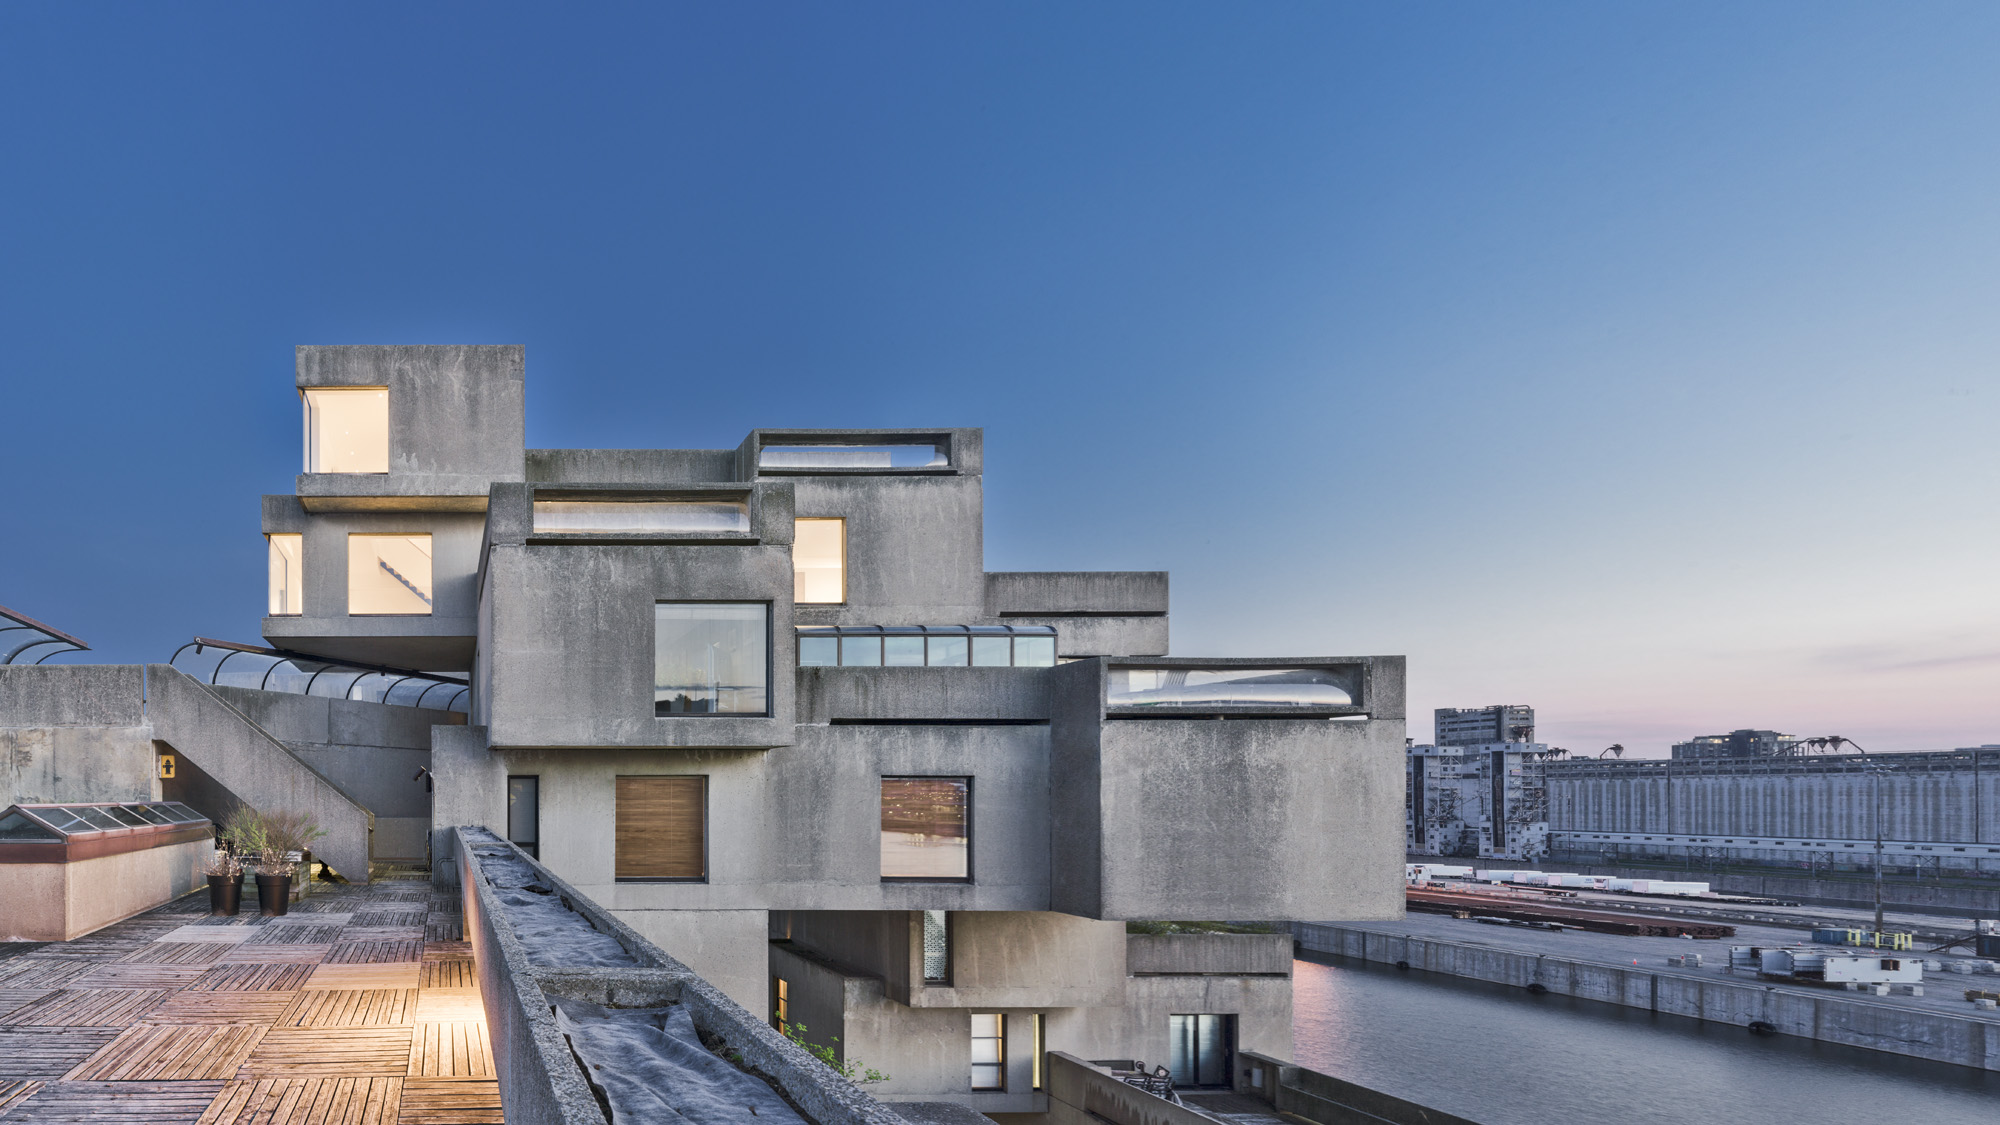 Moshe Safdie reworks his old brutalist apartment